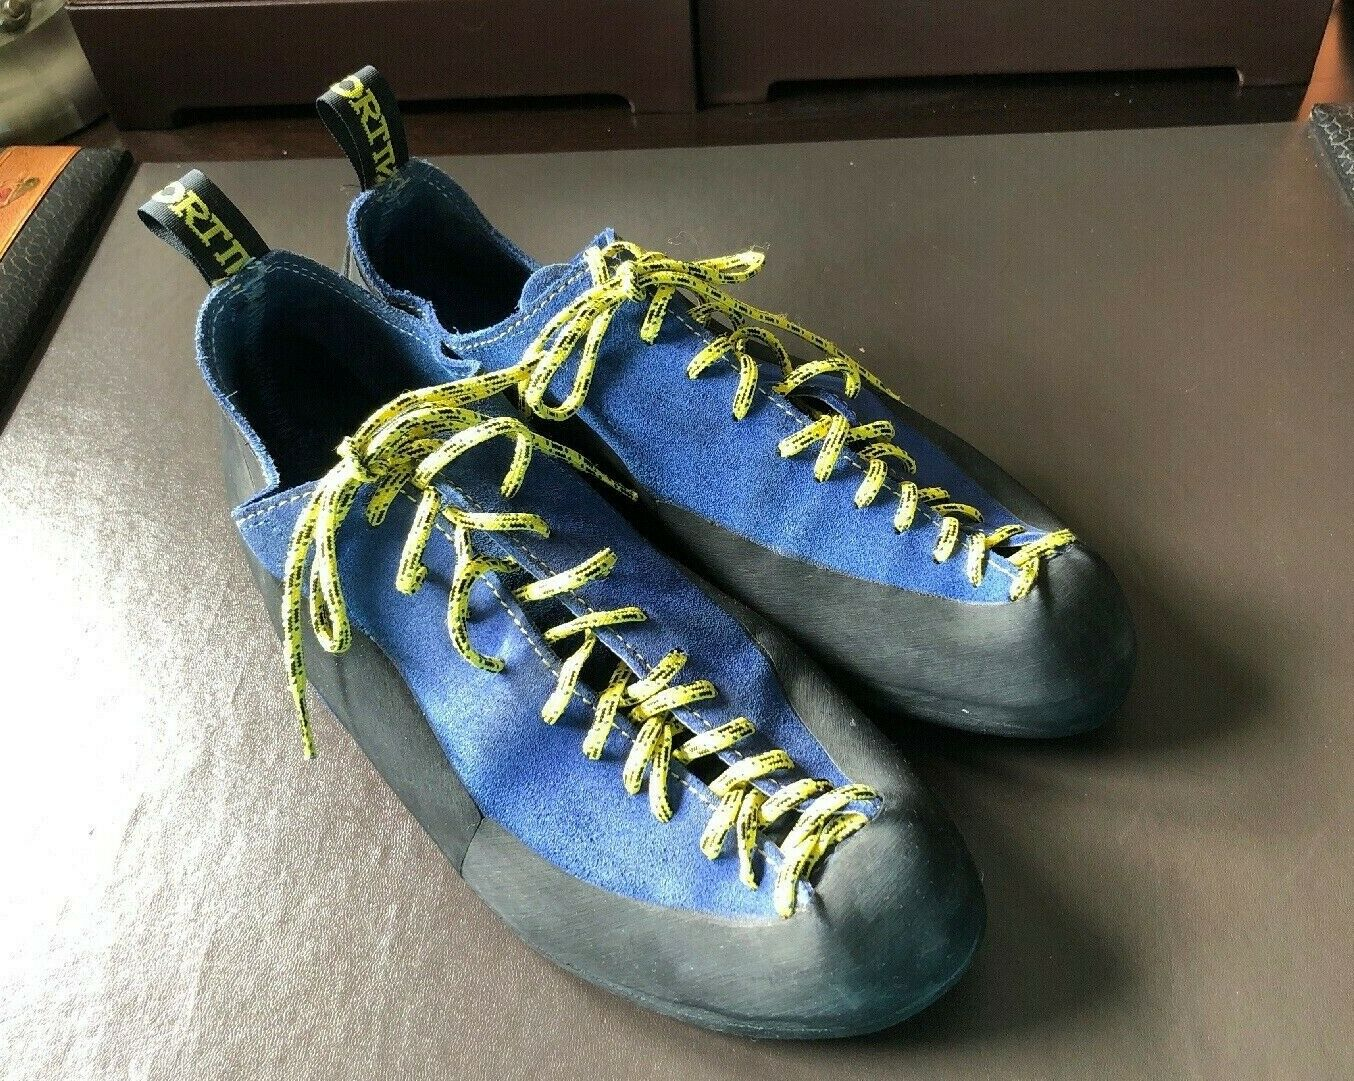 La Sportiva bluee Suede Leather Climbing shoes Men's Size  US 10